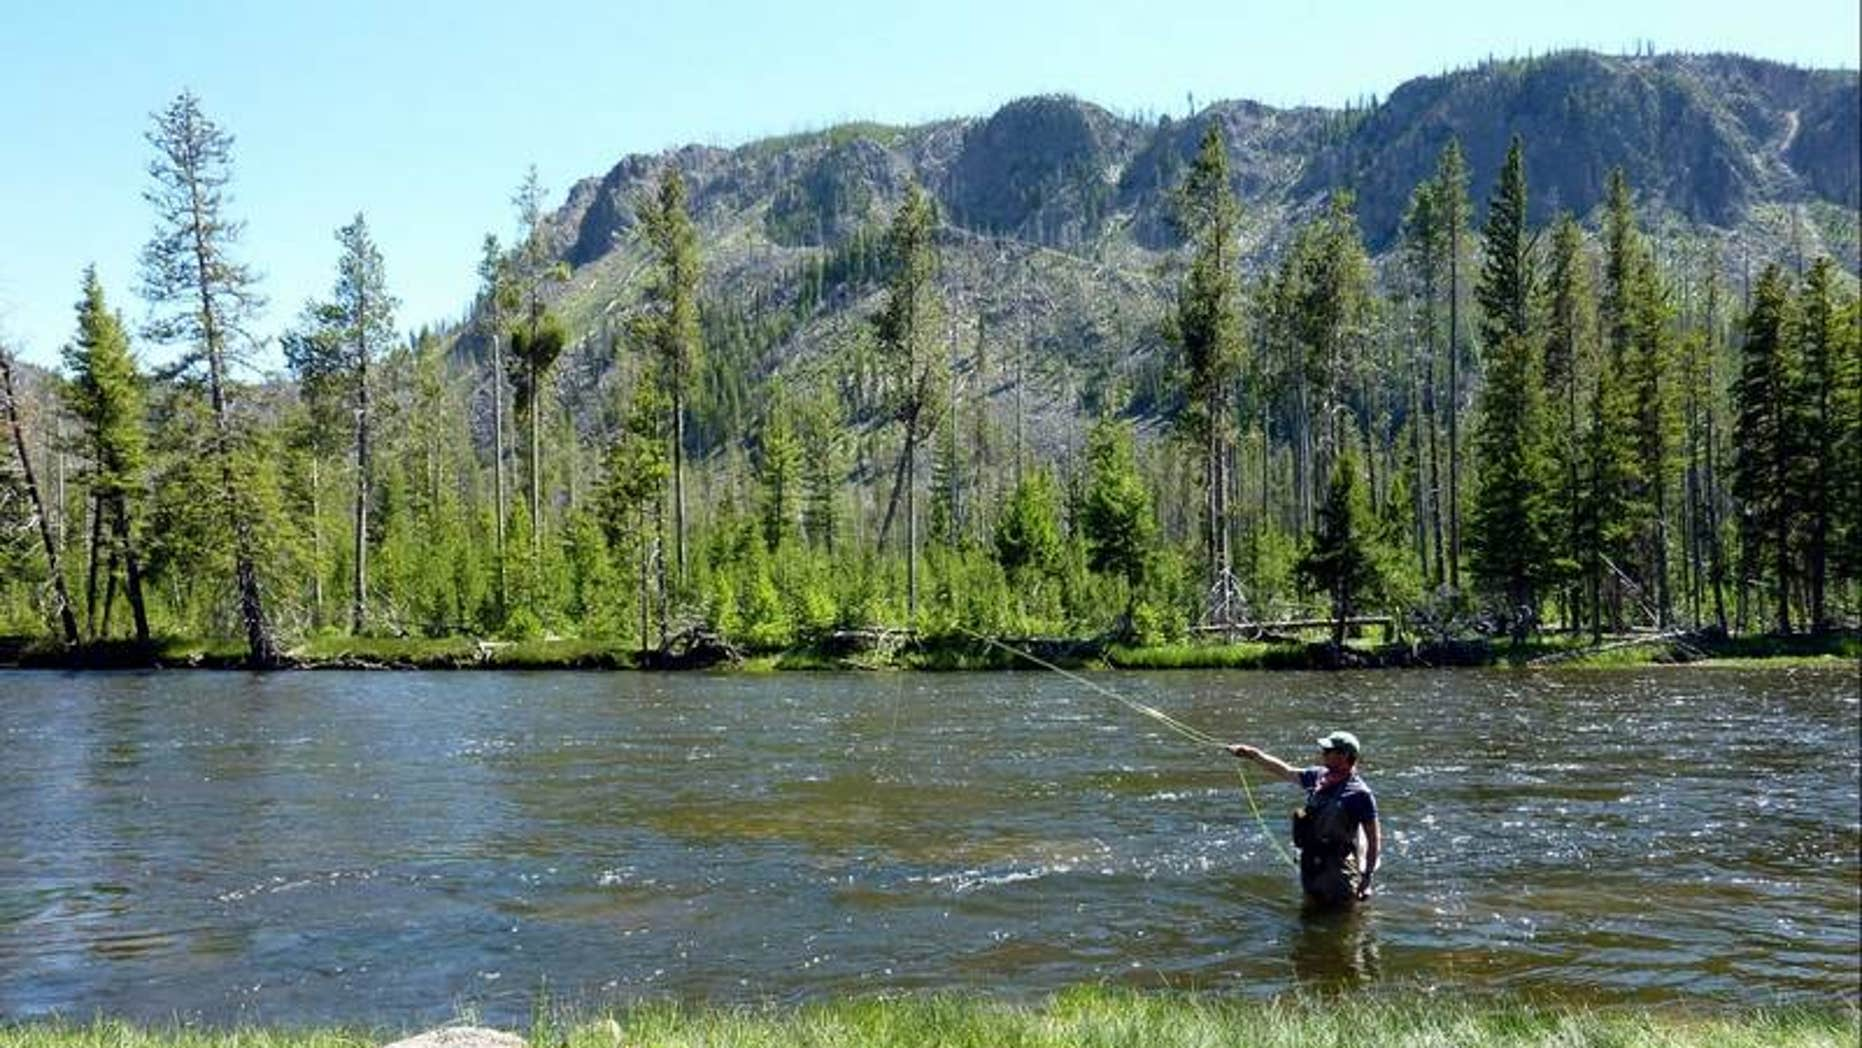 Fishing in the upper Madison River in Yellowstone National Park.